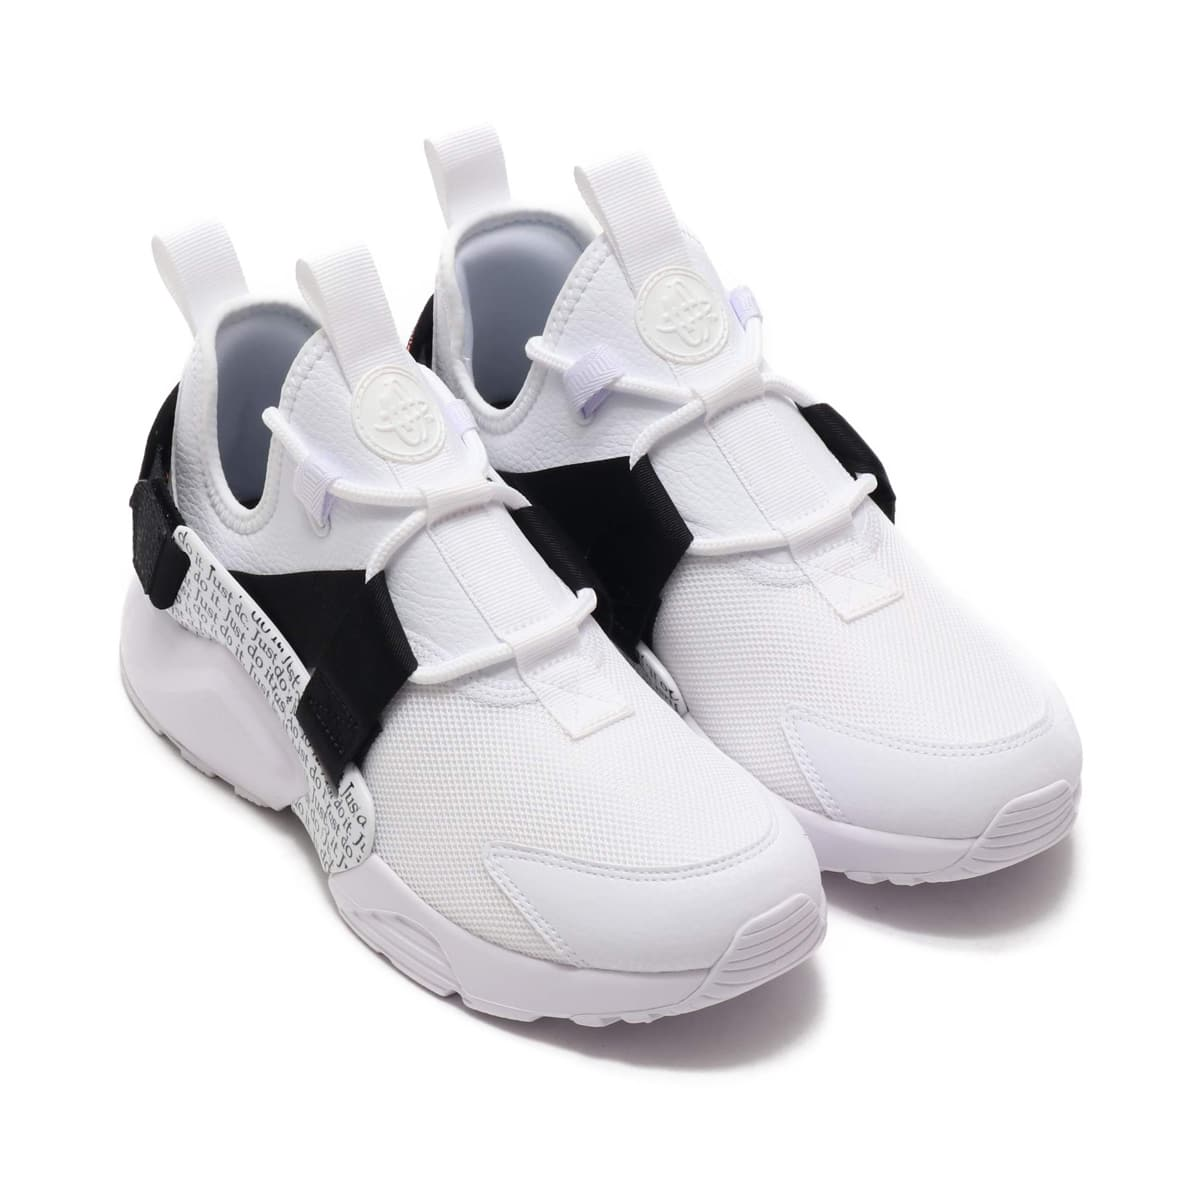 "Nike Air Huarache City Low ""Just Do It"" AO3140 100 White"